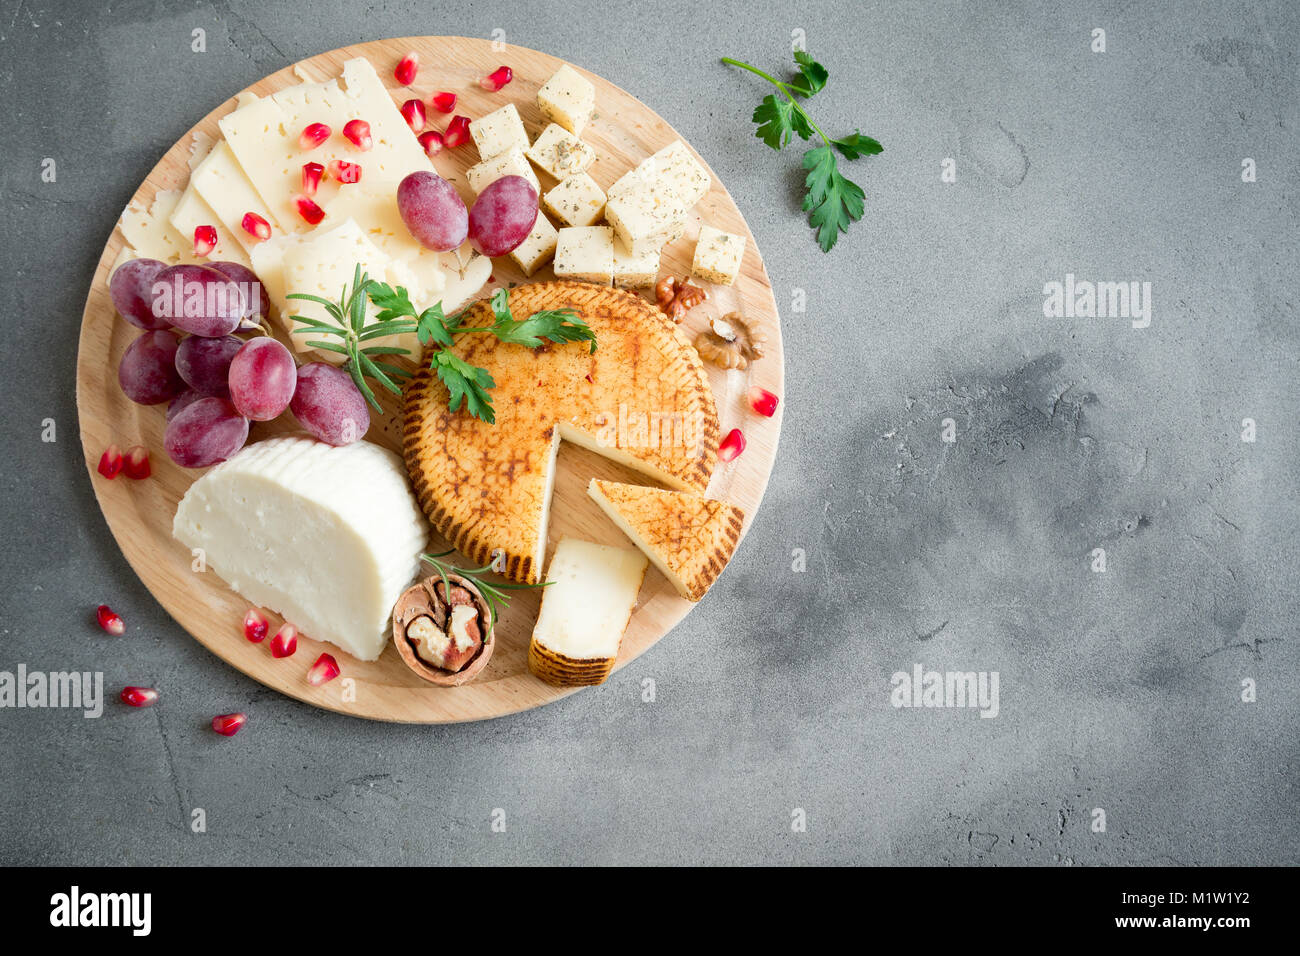 Cheese platter with assorted cheeses, grapes, nuts over gray stone background, copy space. Italian cheese and fruit Stock Photo